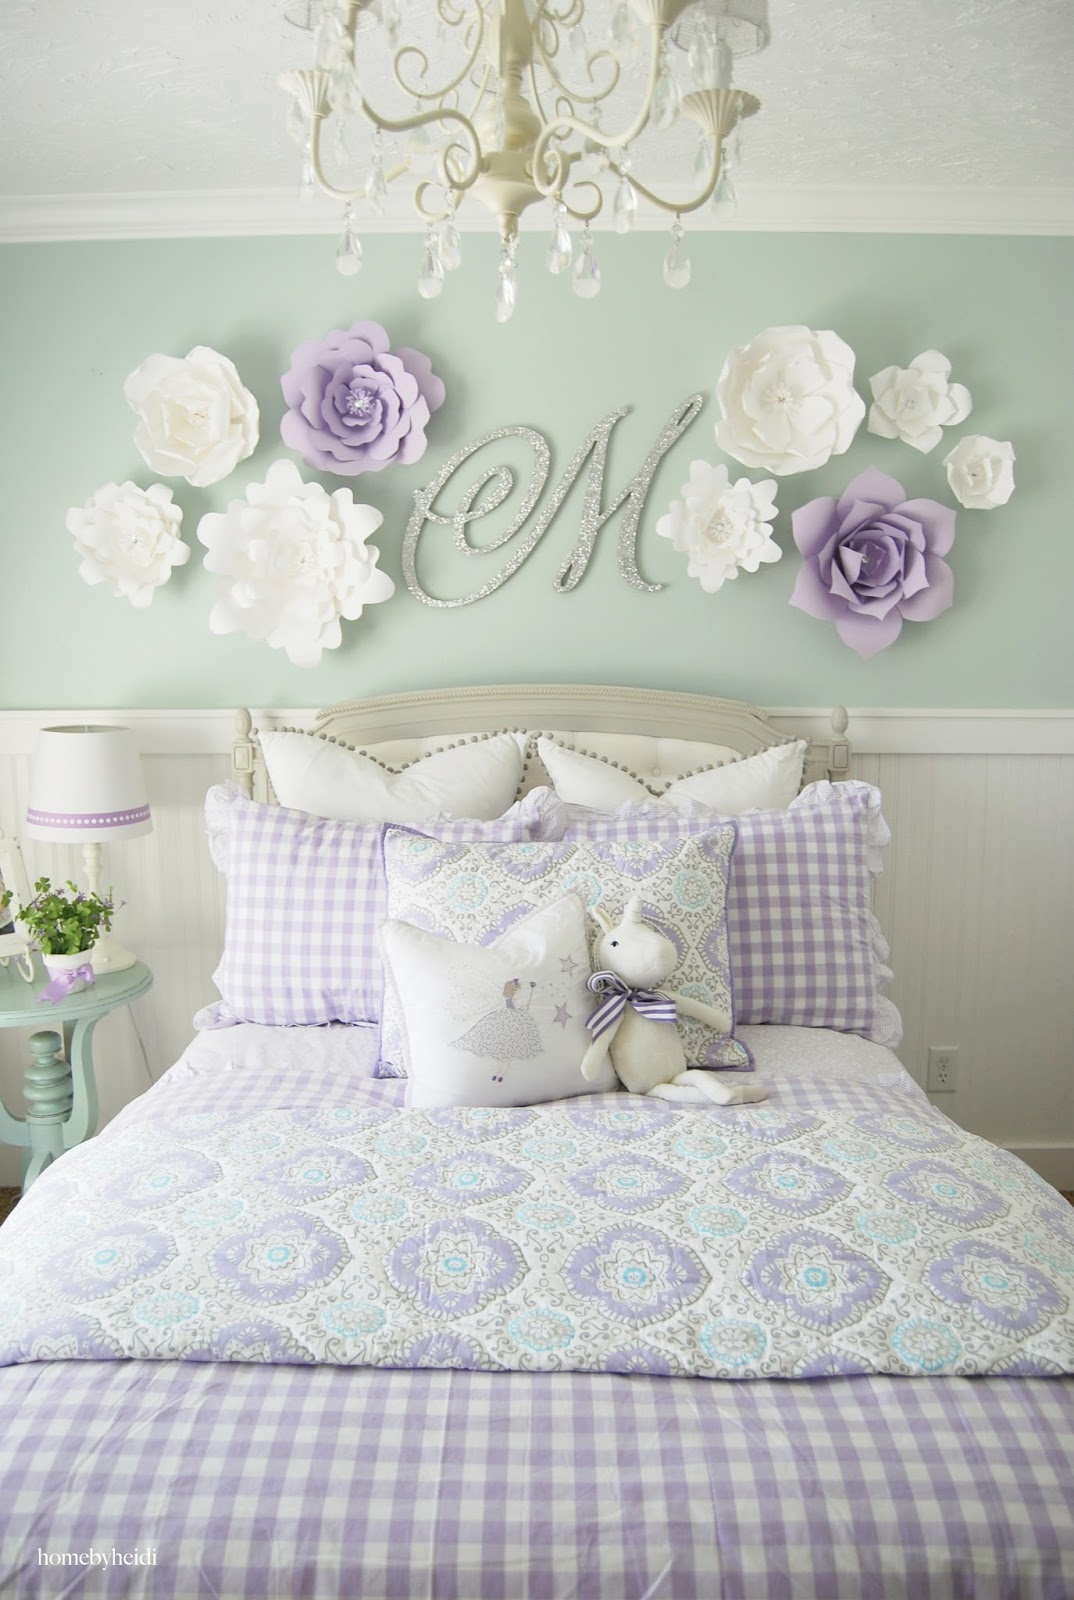 Home by heidi purple turquoise little girls room for Girls bedroom decor ideas